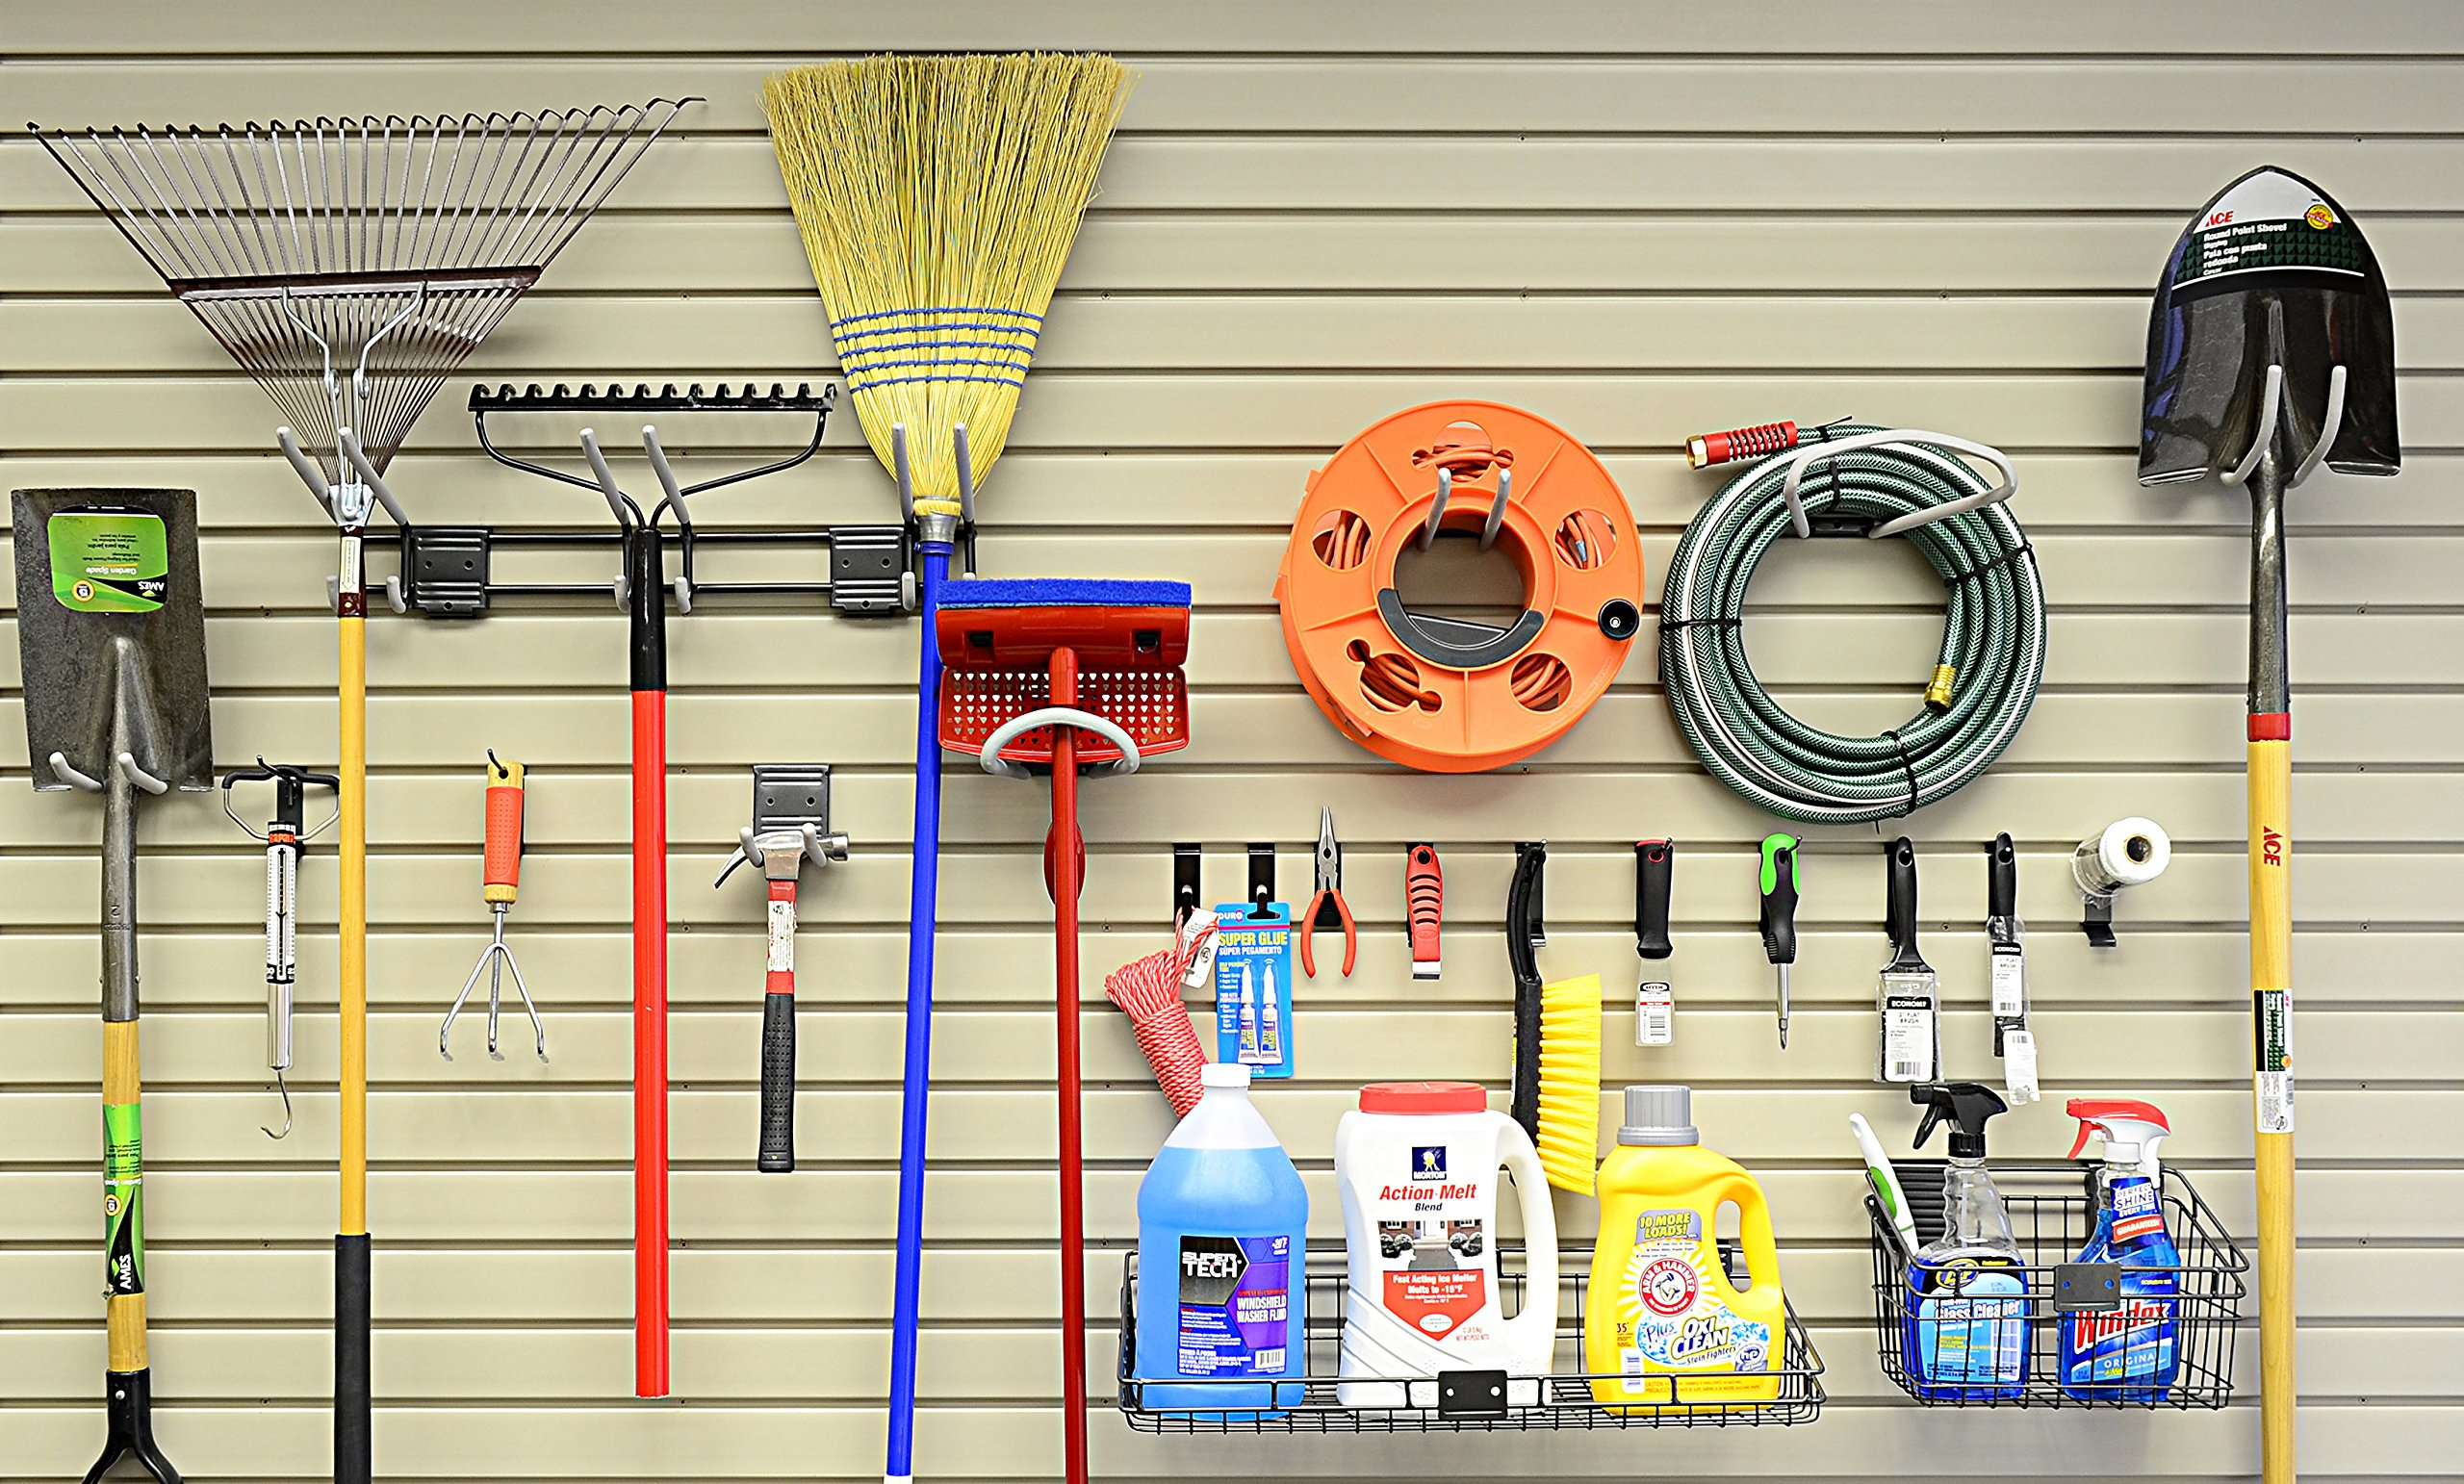 HandiWall Basic Accessory Kit With 21 Hooks, Baskets, and Shelves for Garage Slatwall Panels by HandiSolutions